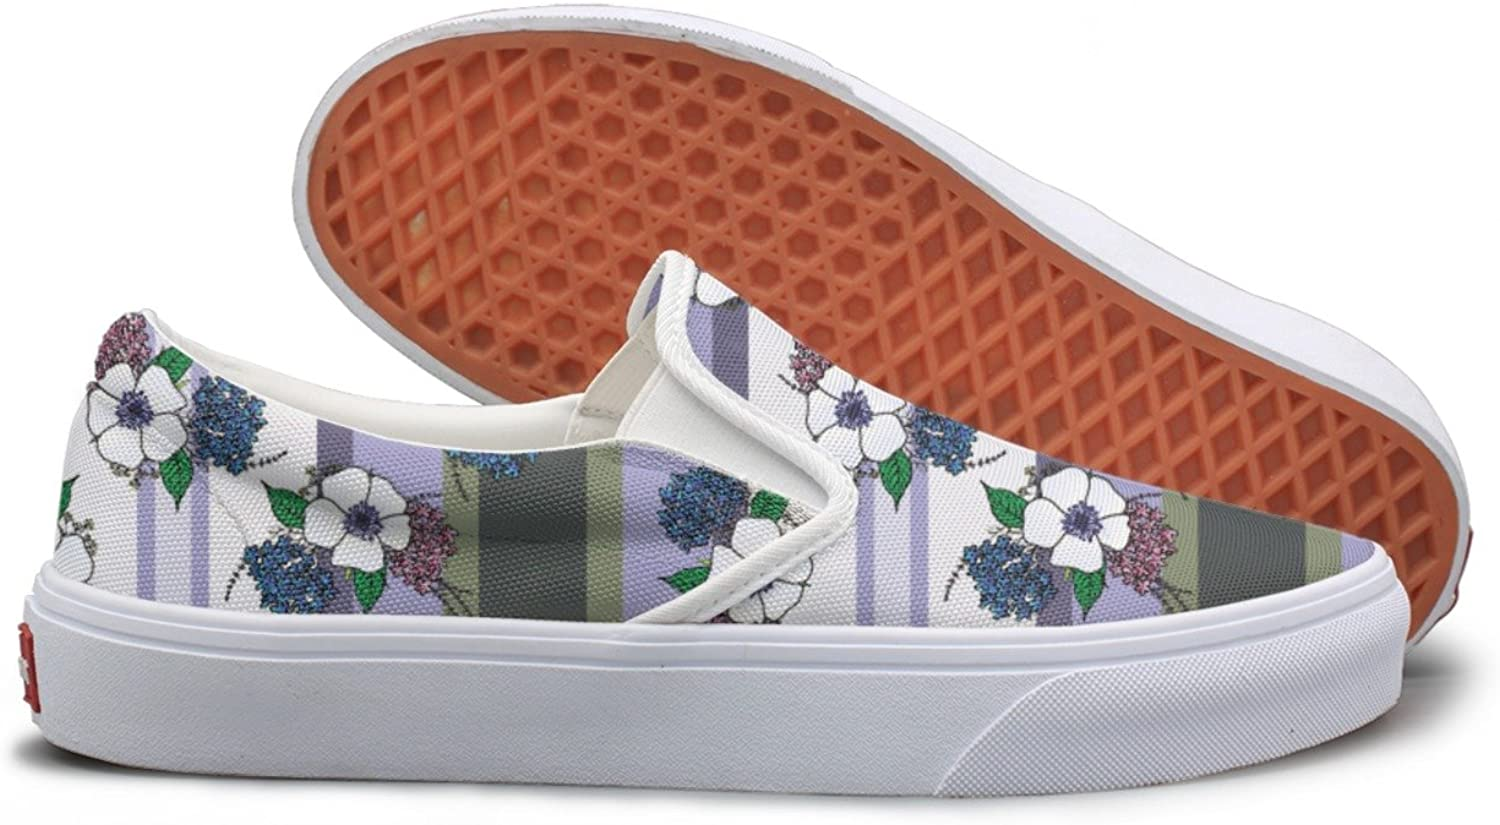 SEERTED Spring Provence Flowers Casual Sneakers for Women Wide Width